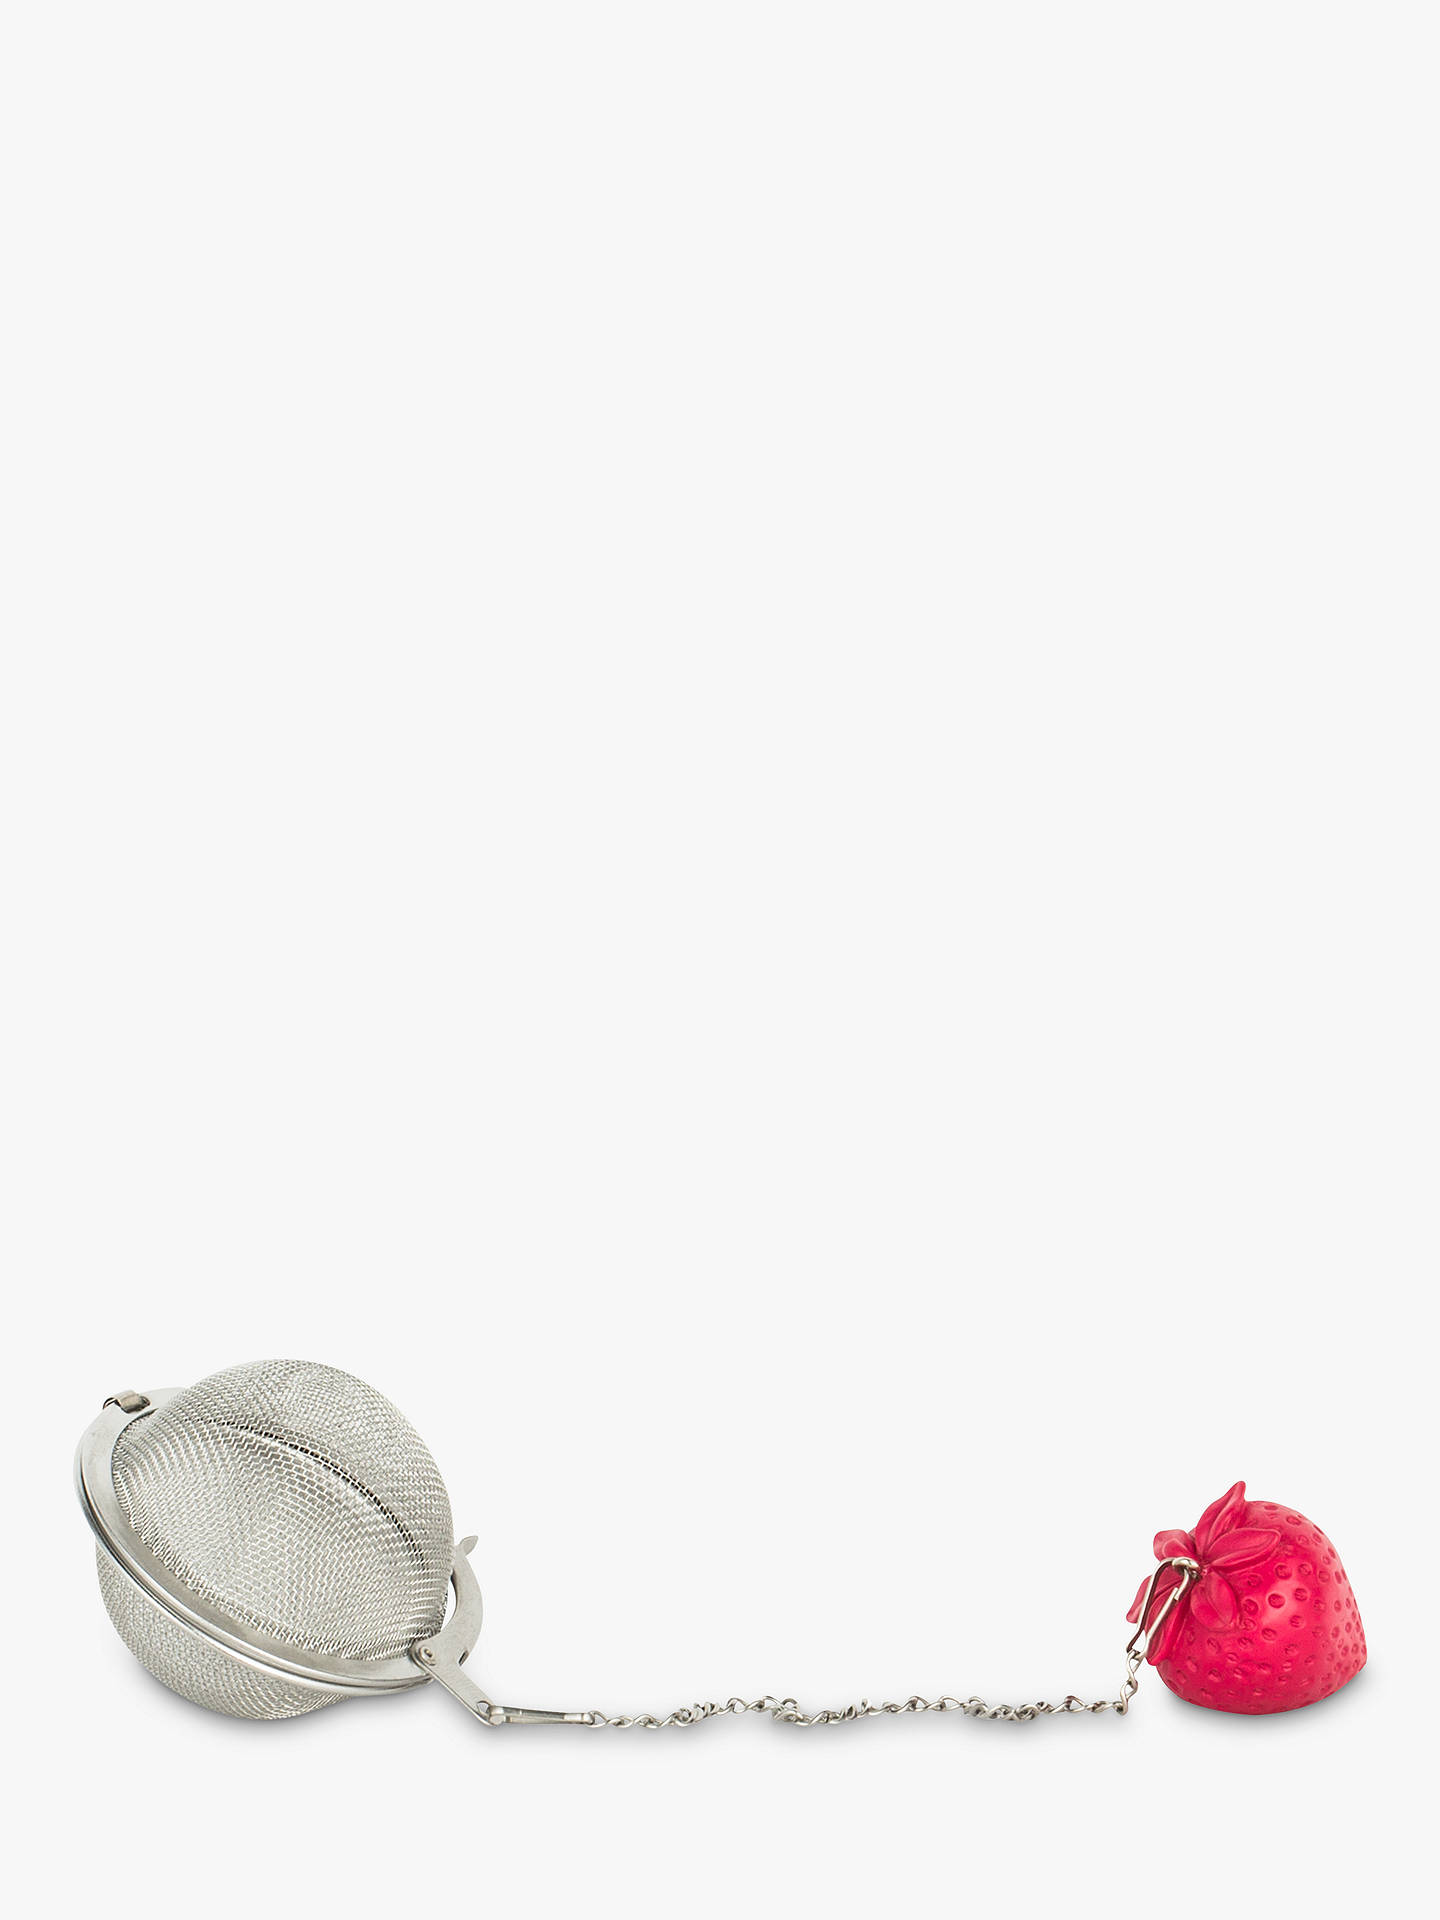 BuyT2 Tea Infuser With Strawberry Ornament, Pink Online at johnlewis.com